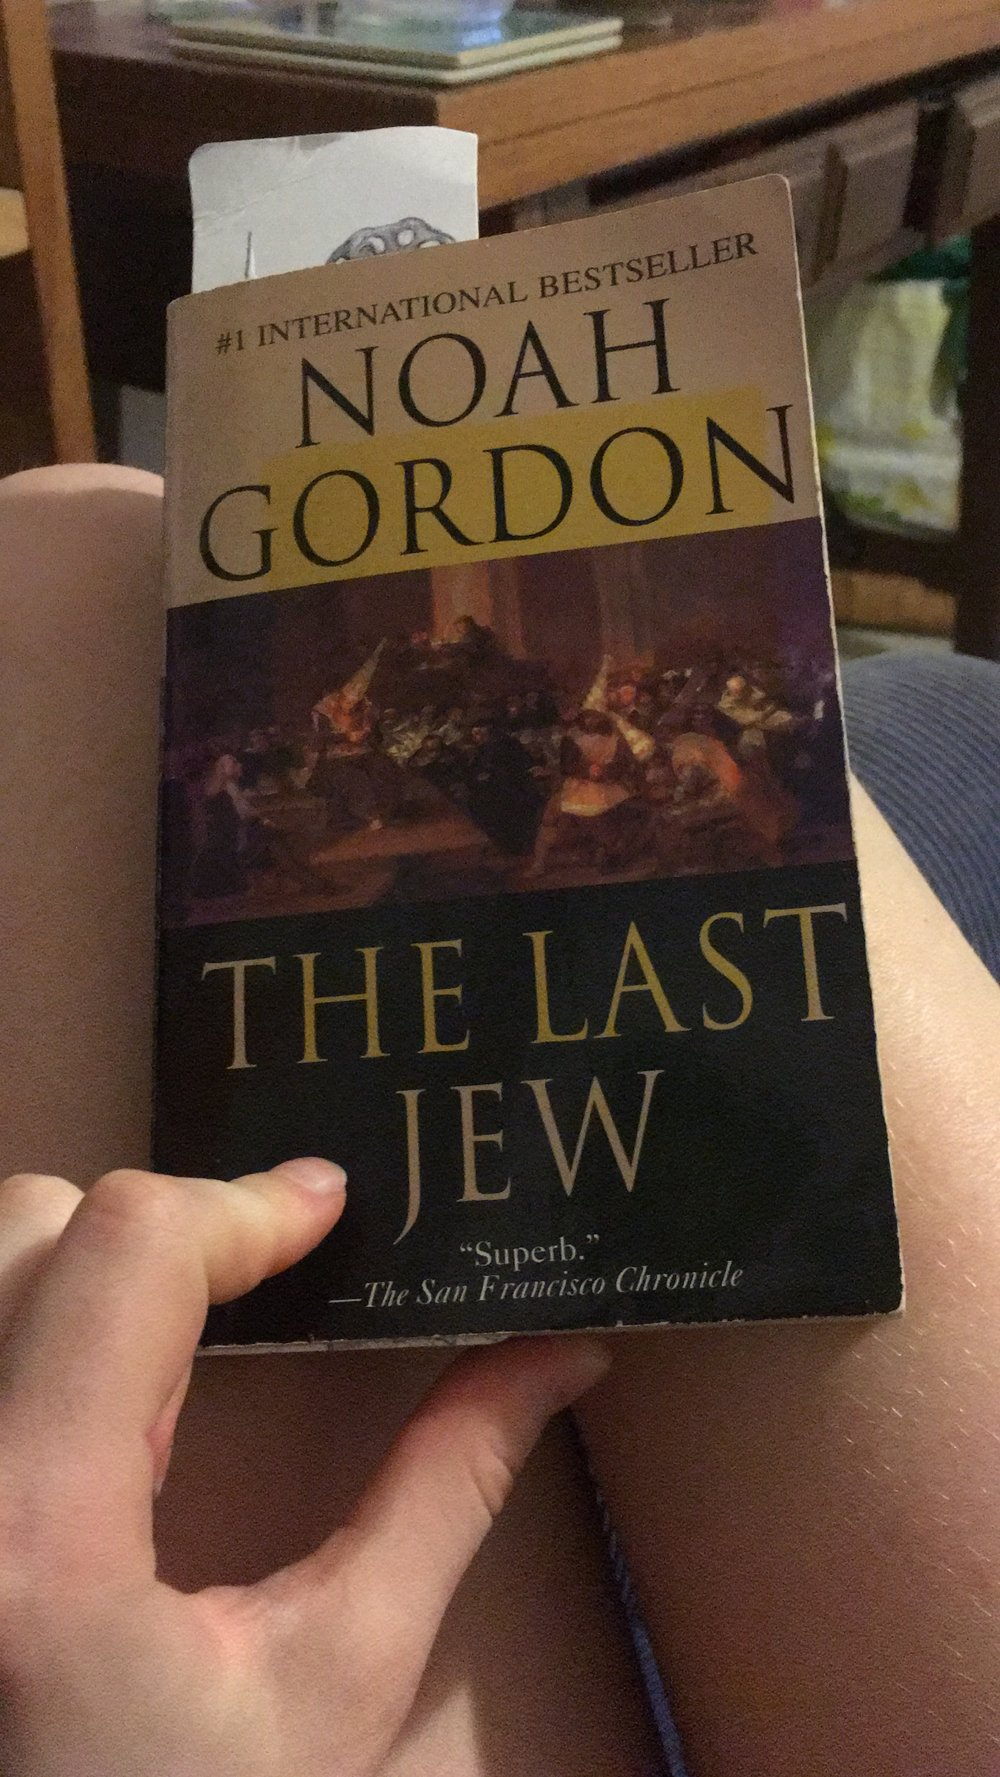 What I have been reading―a novel based on Spanish history.